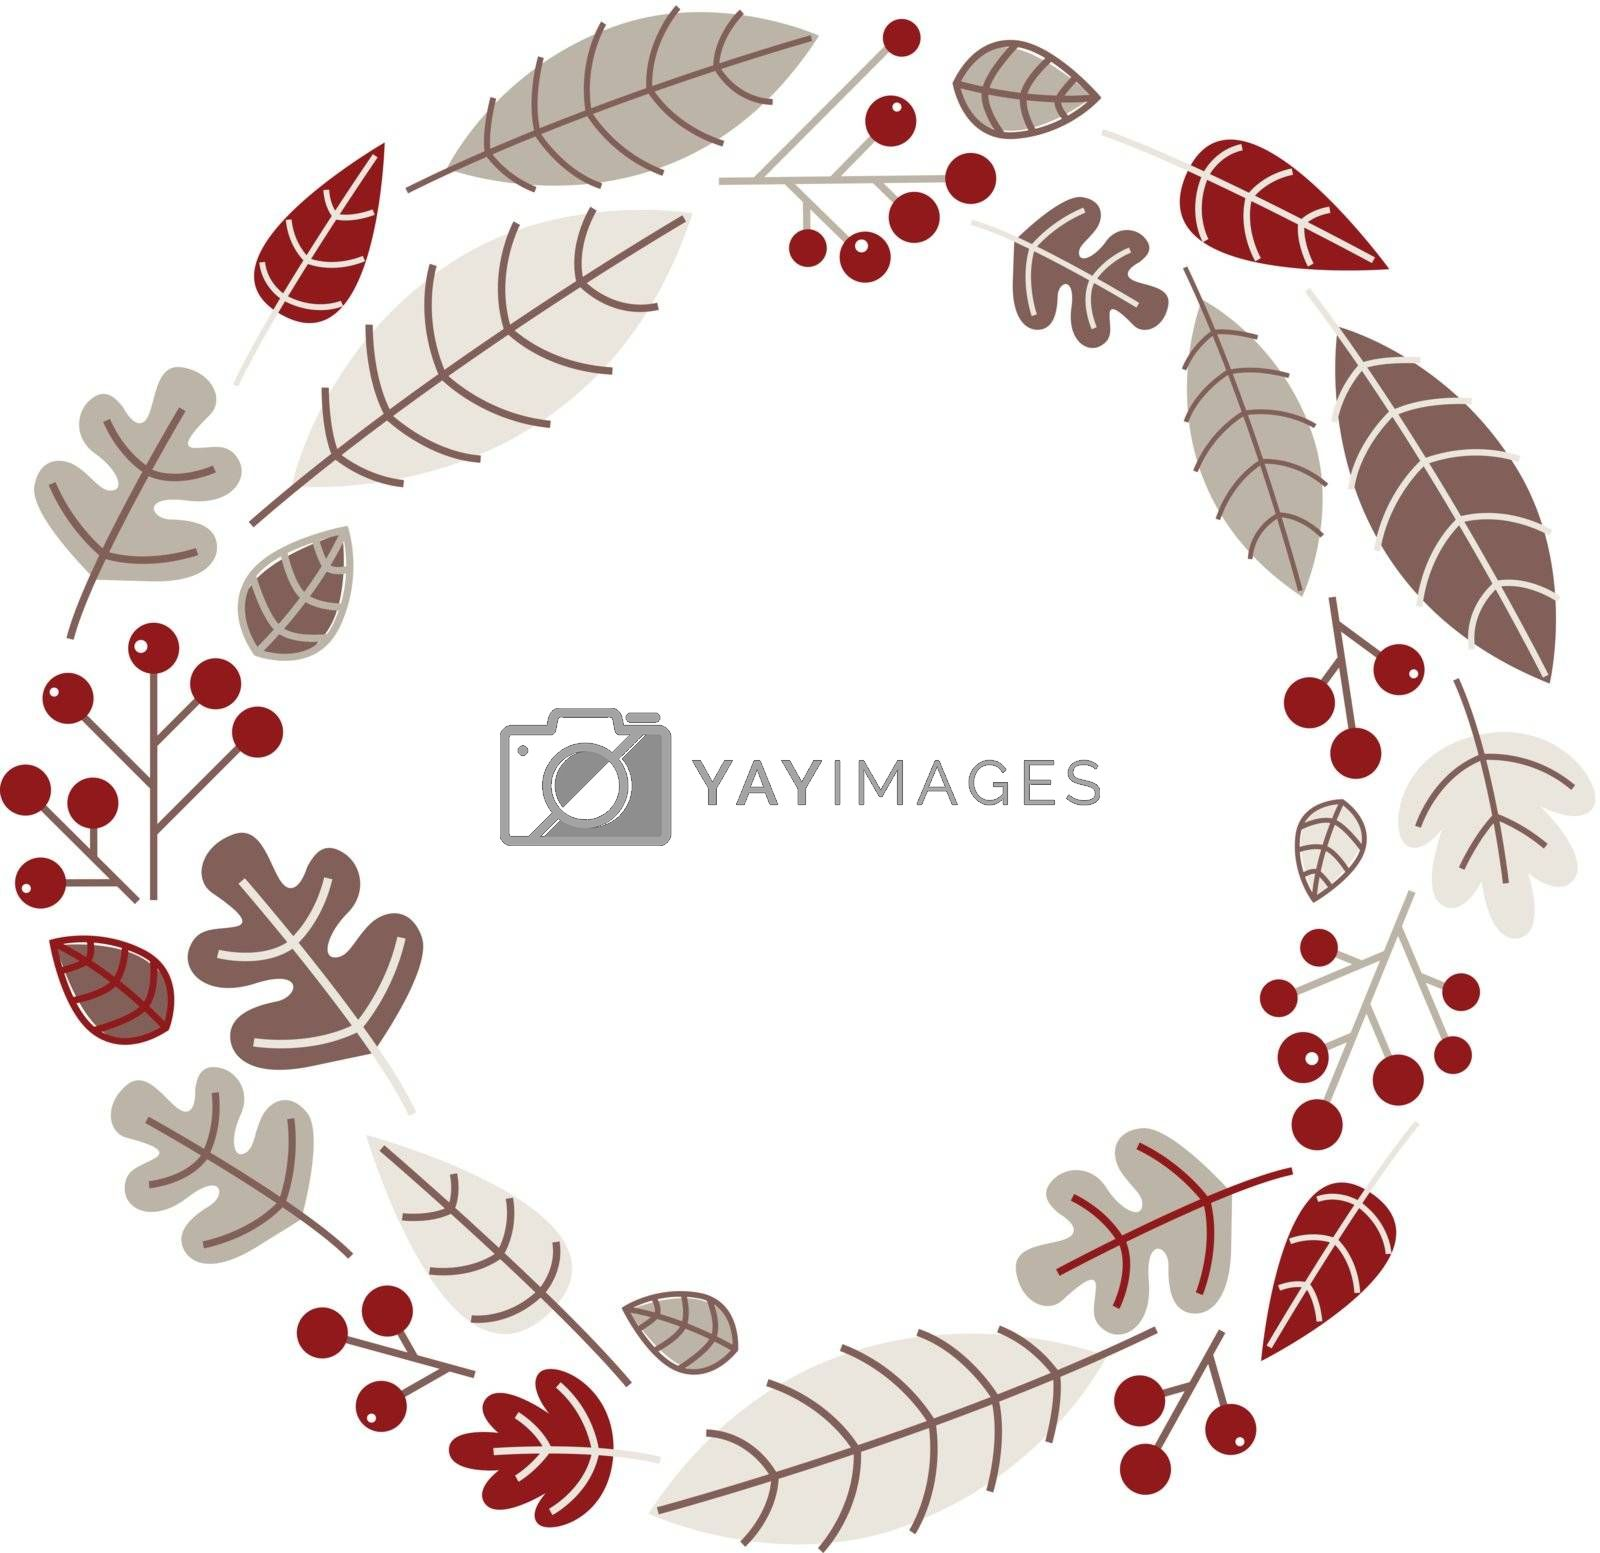 Retro xmas wreath with leaves and ashberry. Vector illustration